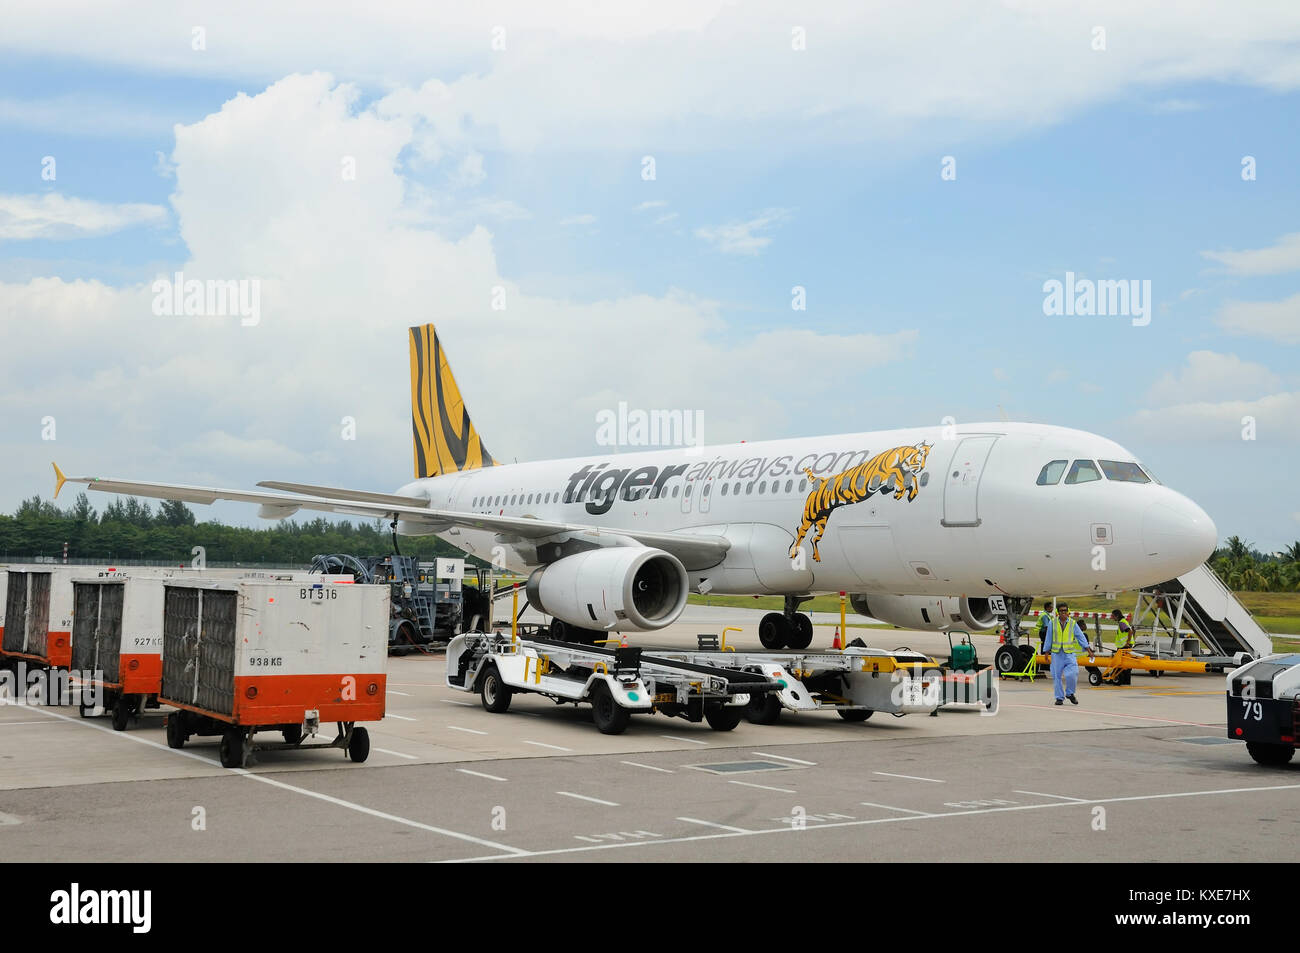 Tiger Airways plane parked at the airport for food and fuel resupplies before her next flight. - Stock Image